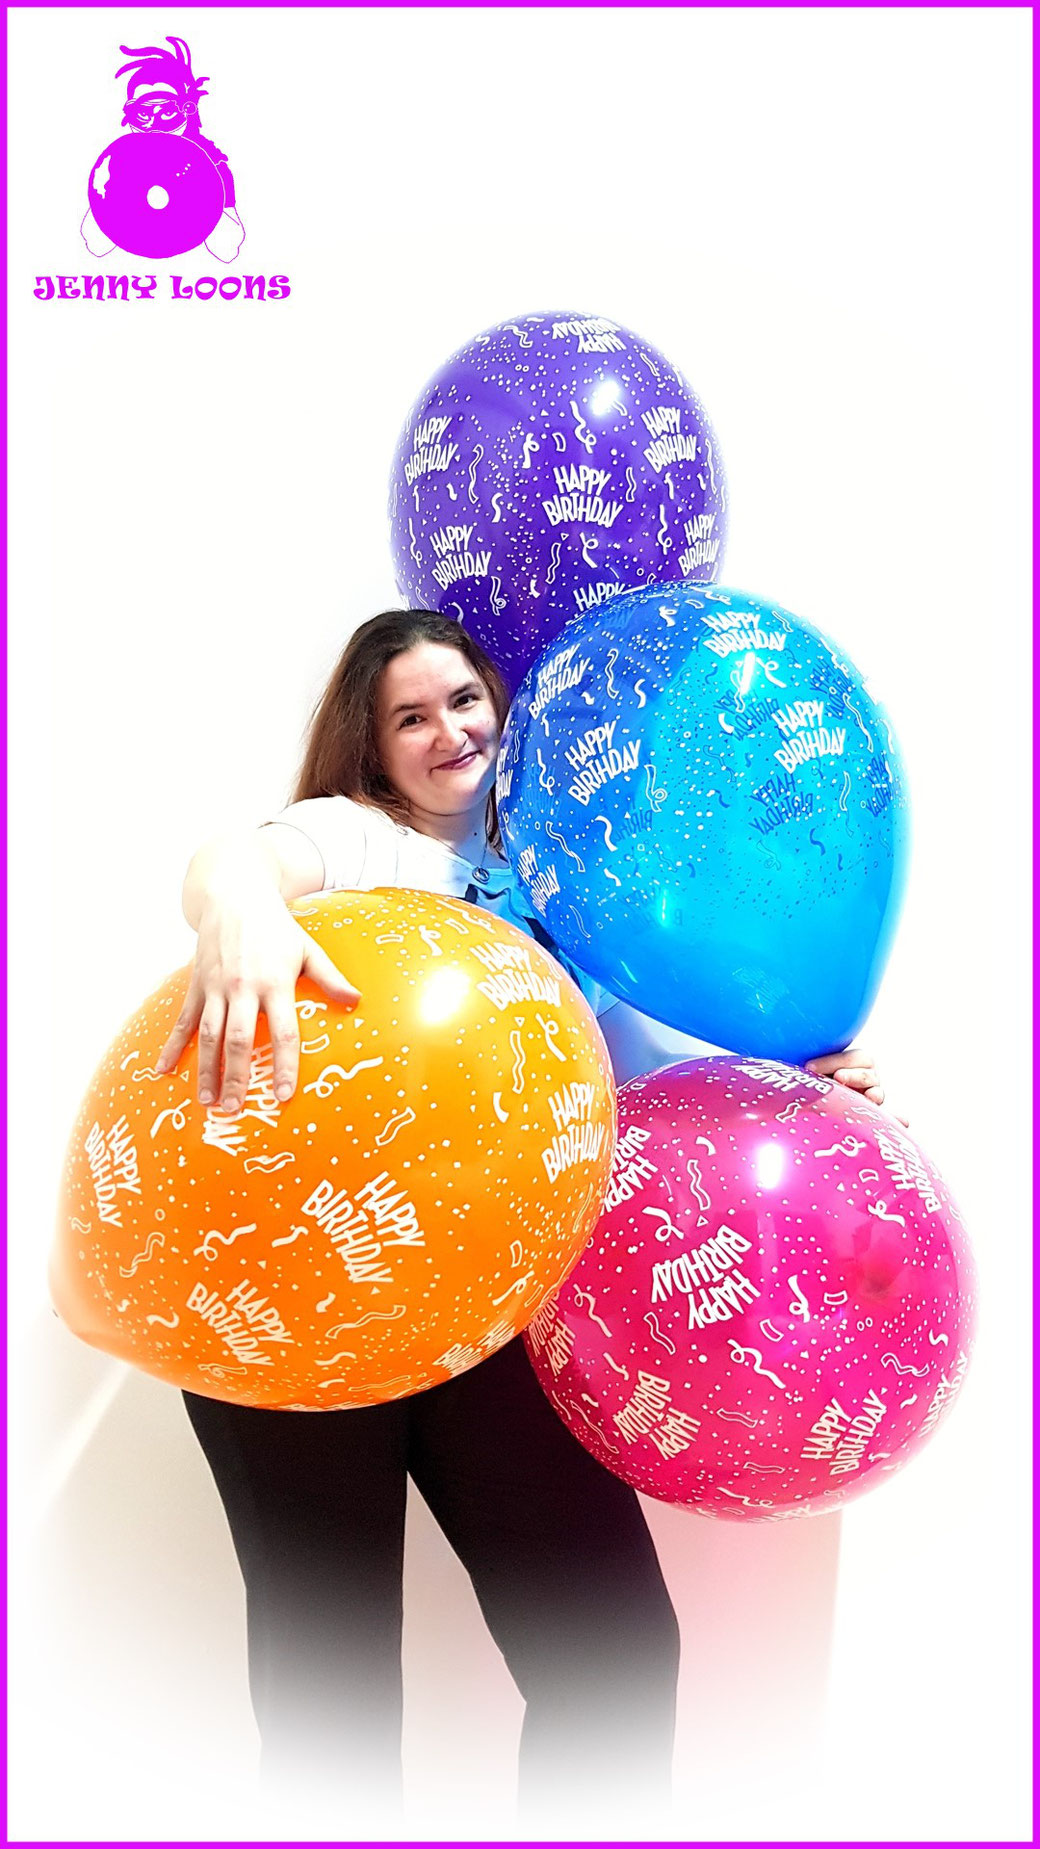 Qualatex Luftballon Ballon Happy Birthday Geburtstag 16inch 40cm pink blau lila purple blue orange Balloon Balloons